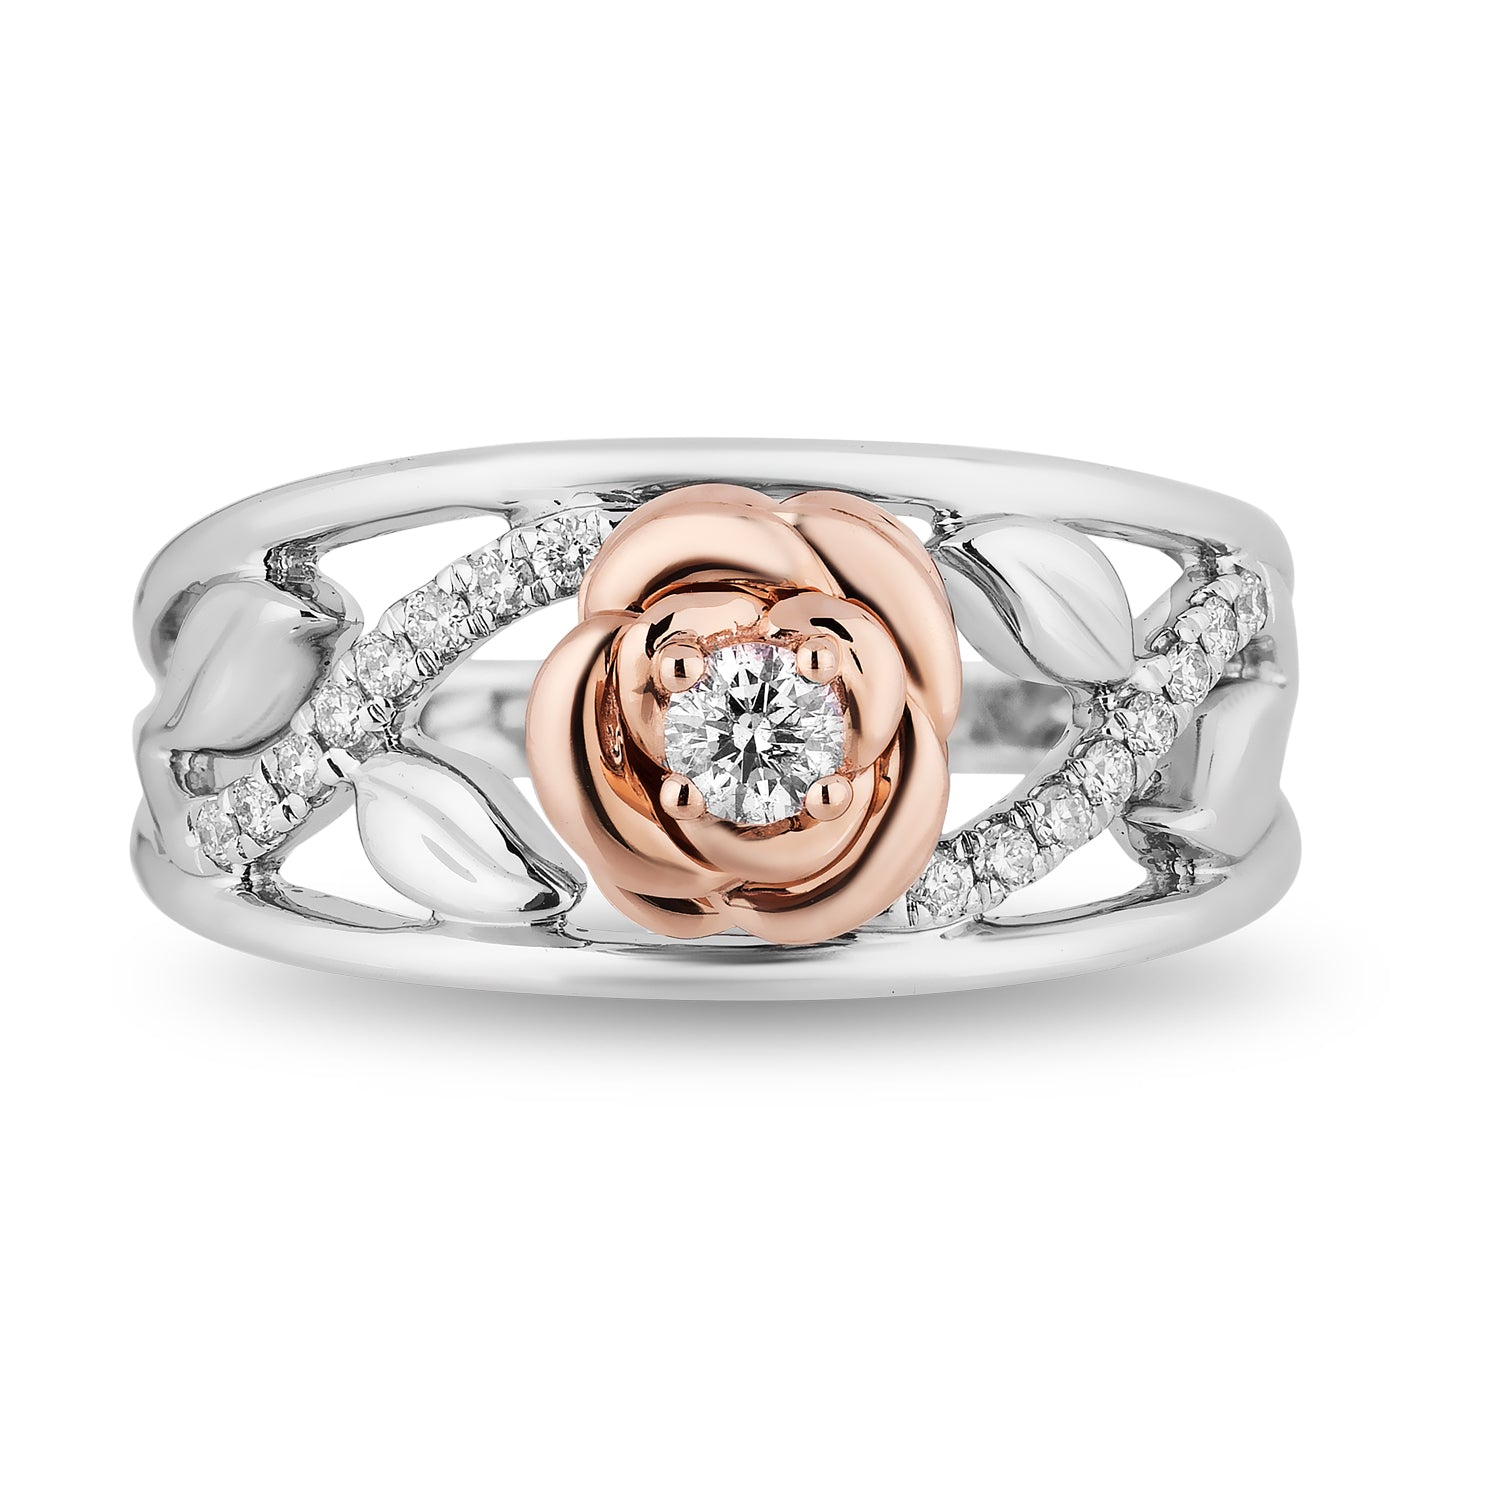 enchanted_disney-belle_rose_ring-9k_rose_gold_and_sterling_silver_0.20CTTW_2